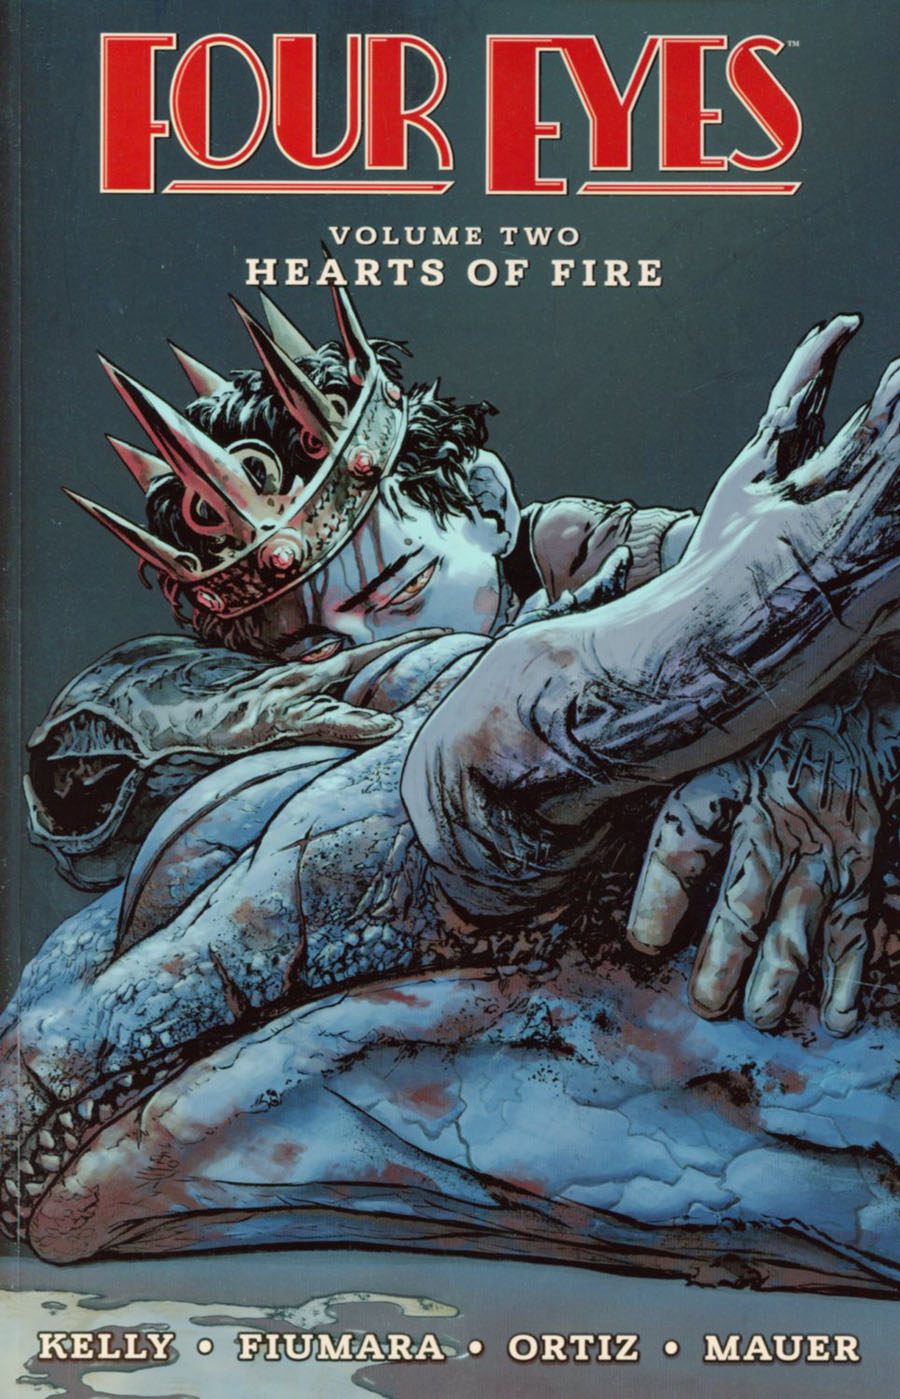 Four Eyes Vol 2 Hearts Of Fire TP